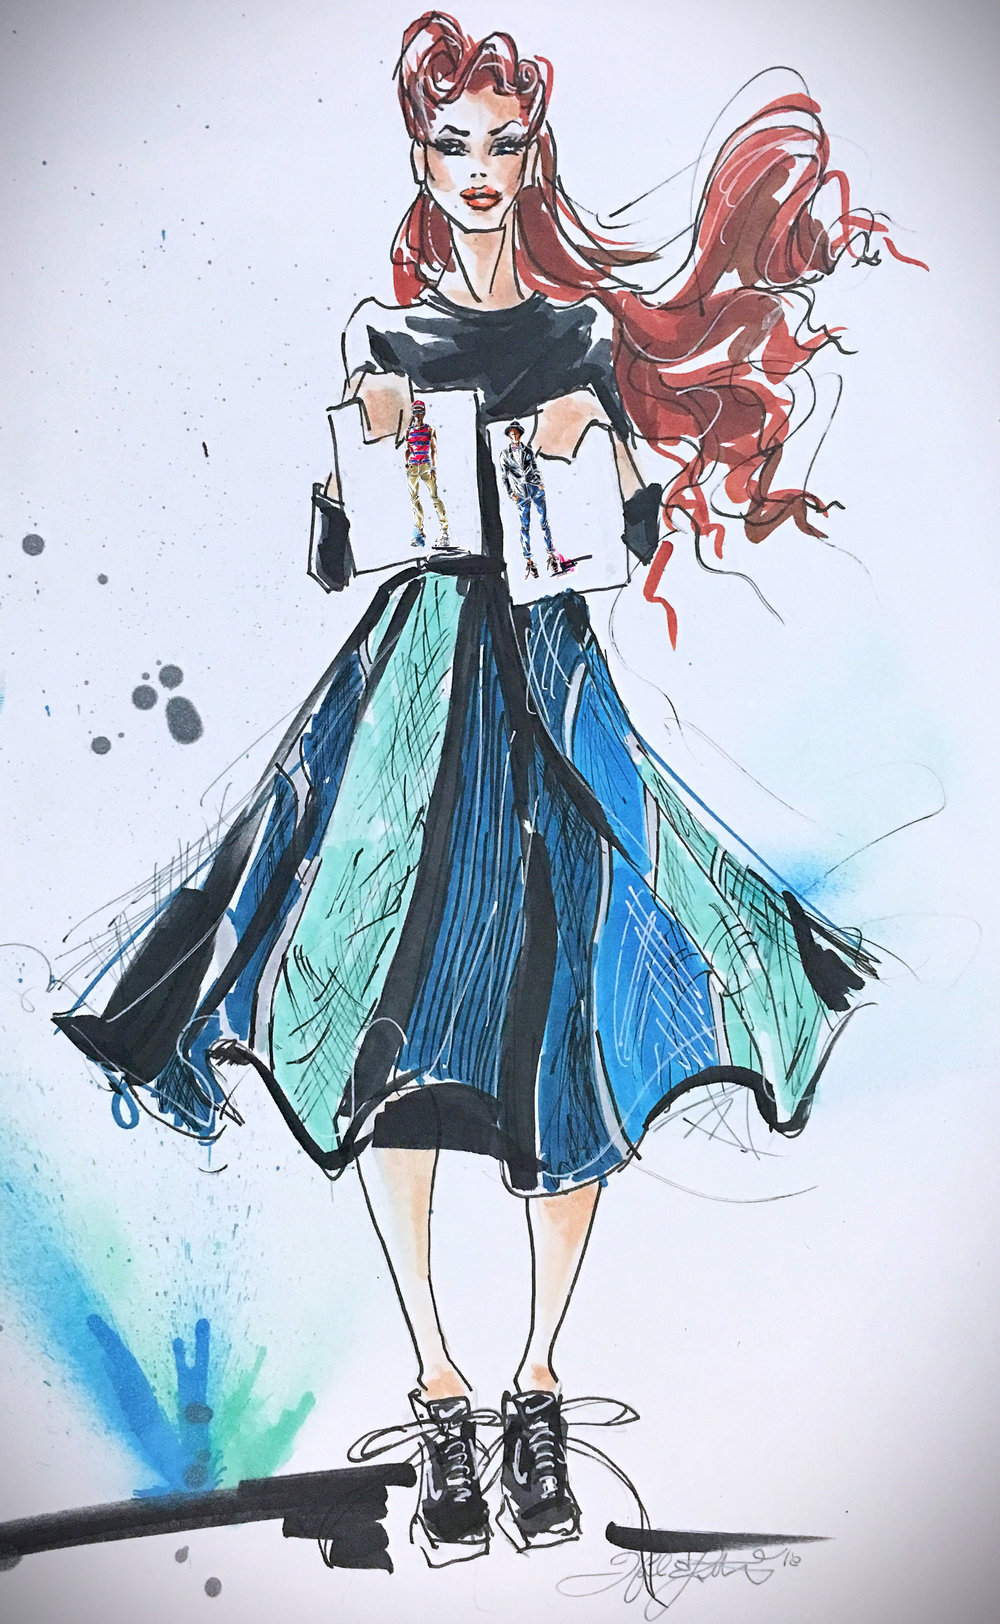 Fashion illustration by MelEesa Lorett. Click   here   for more of her work.